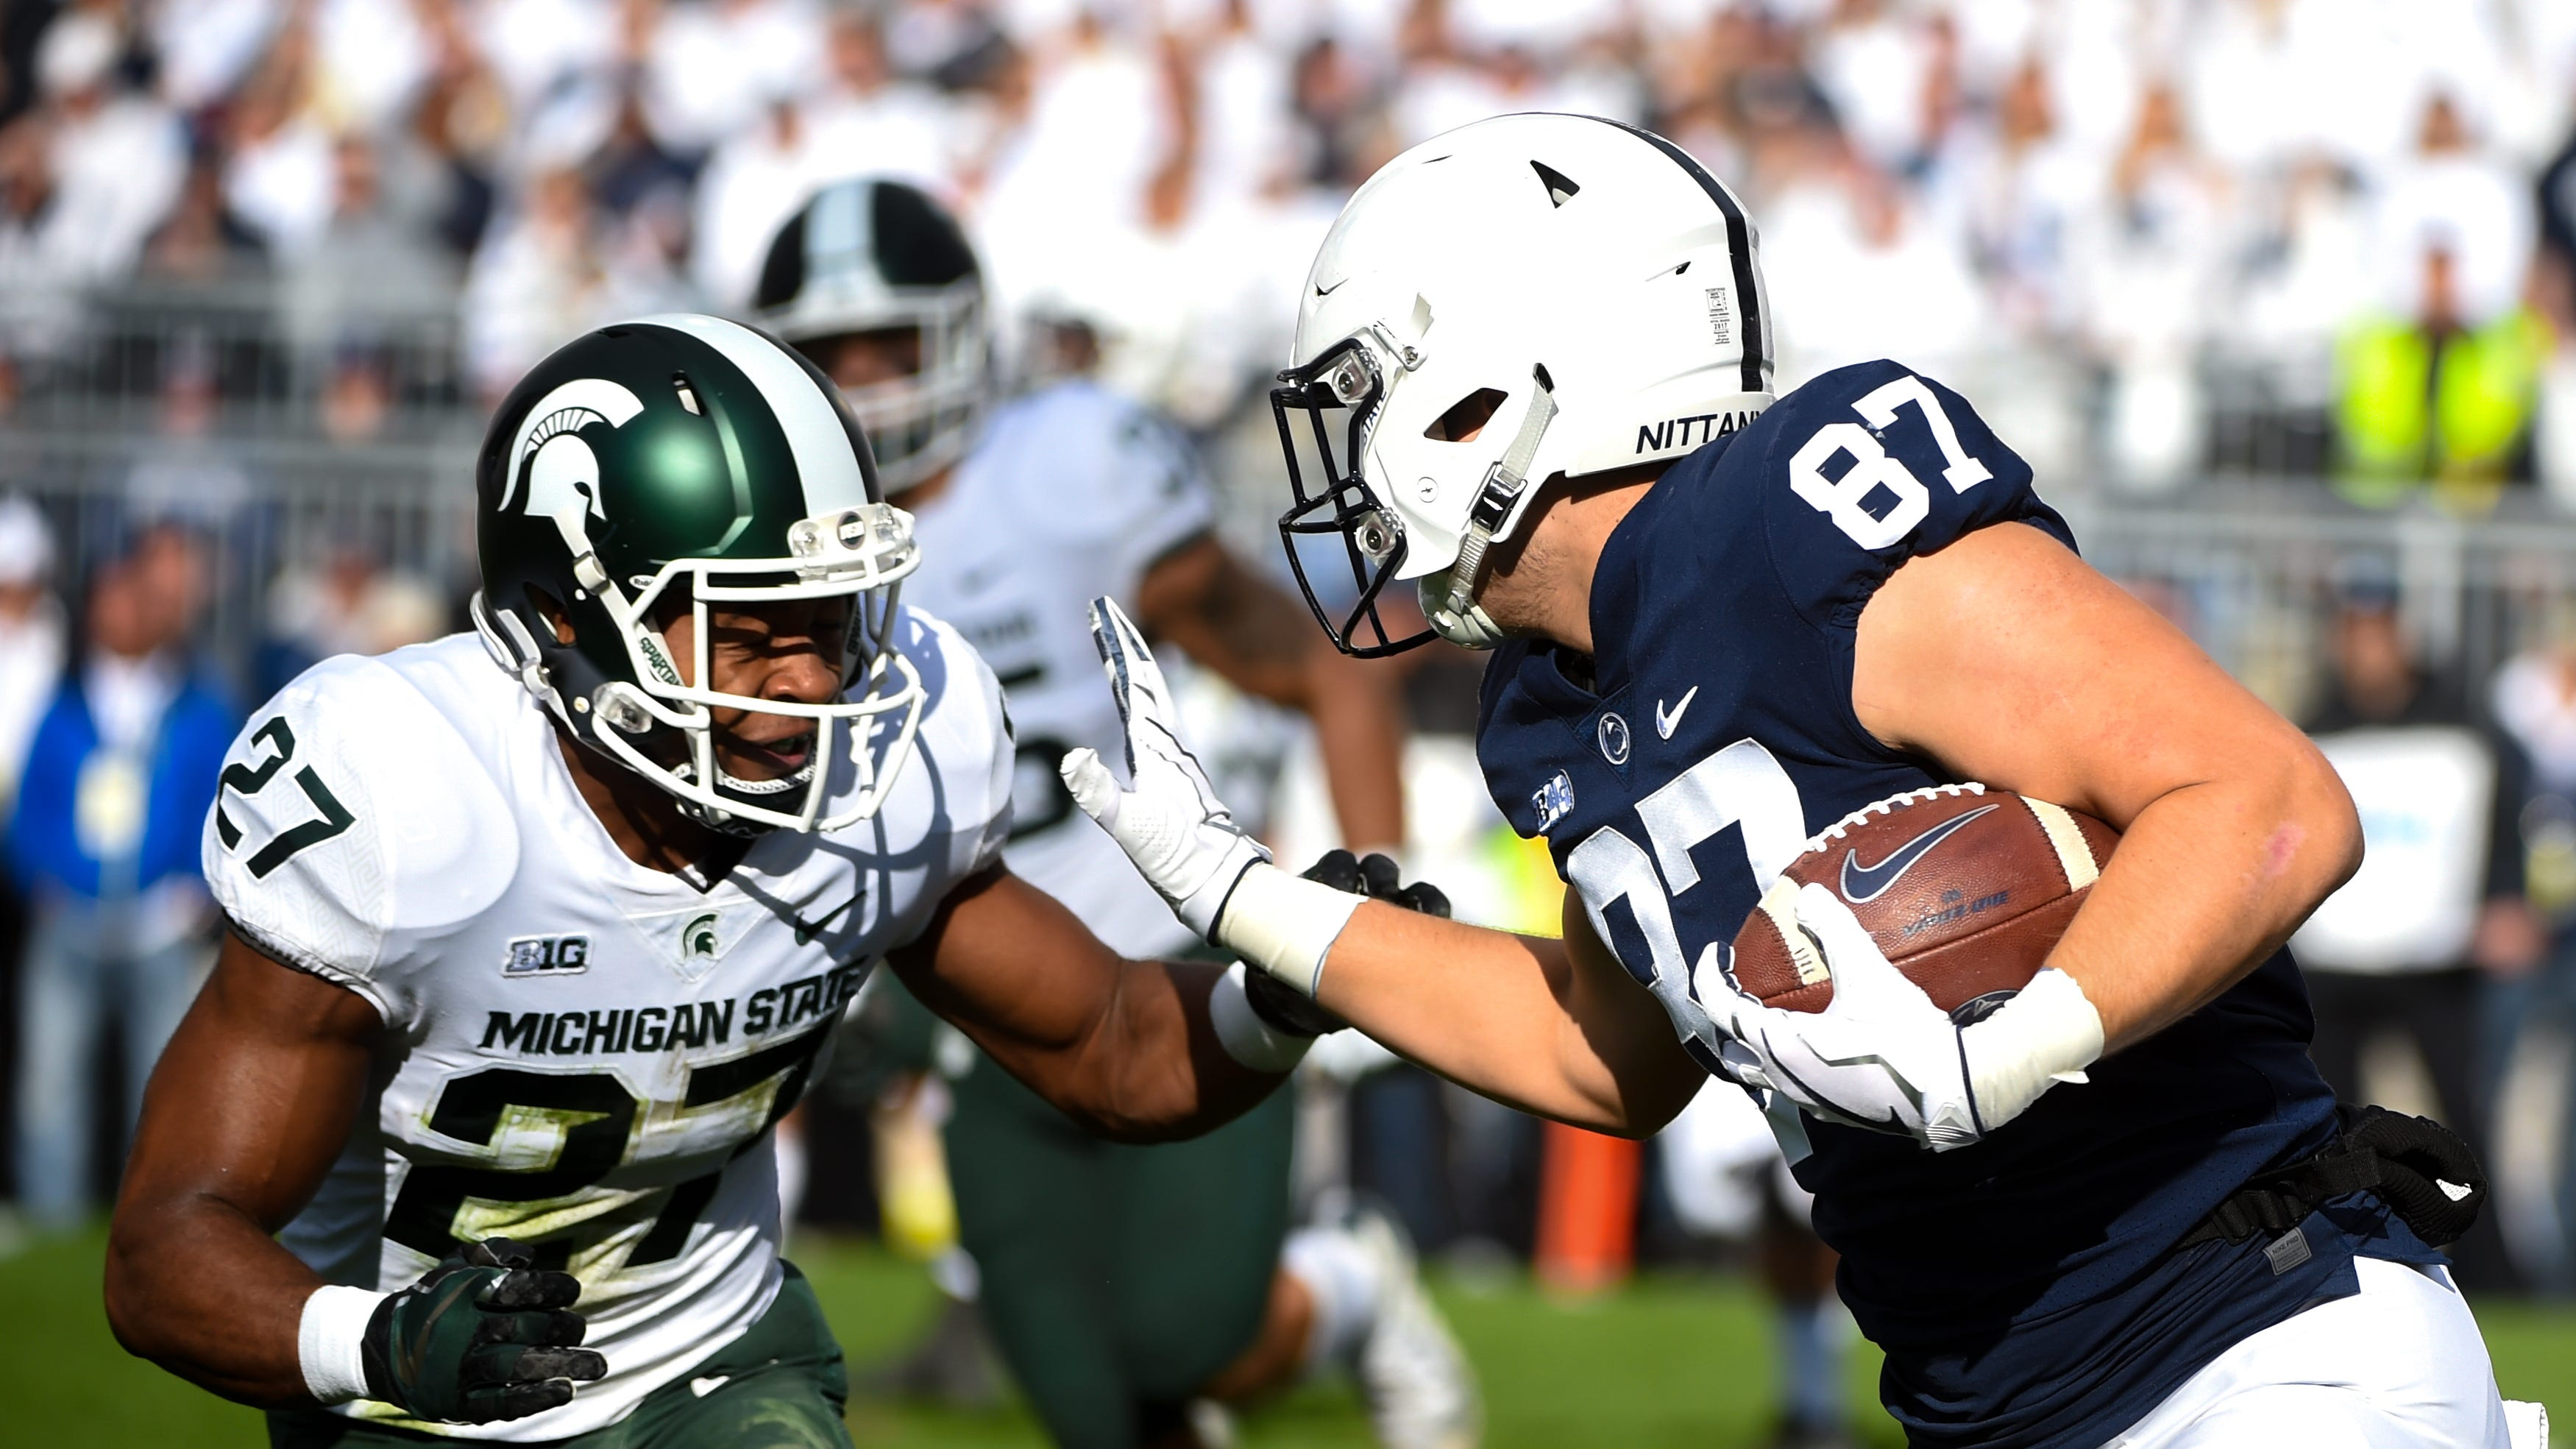 Penn State's Pat Freiermuth (87) looks to stiff-arm Michigan State's Jahz Watts (27), October 13, 2018. The Nittany Lions fell to the Spartans 17-21.